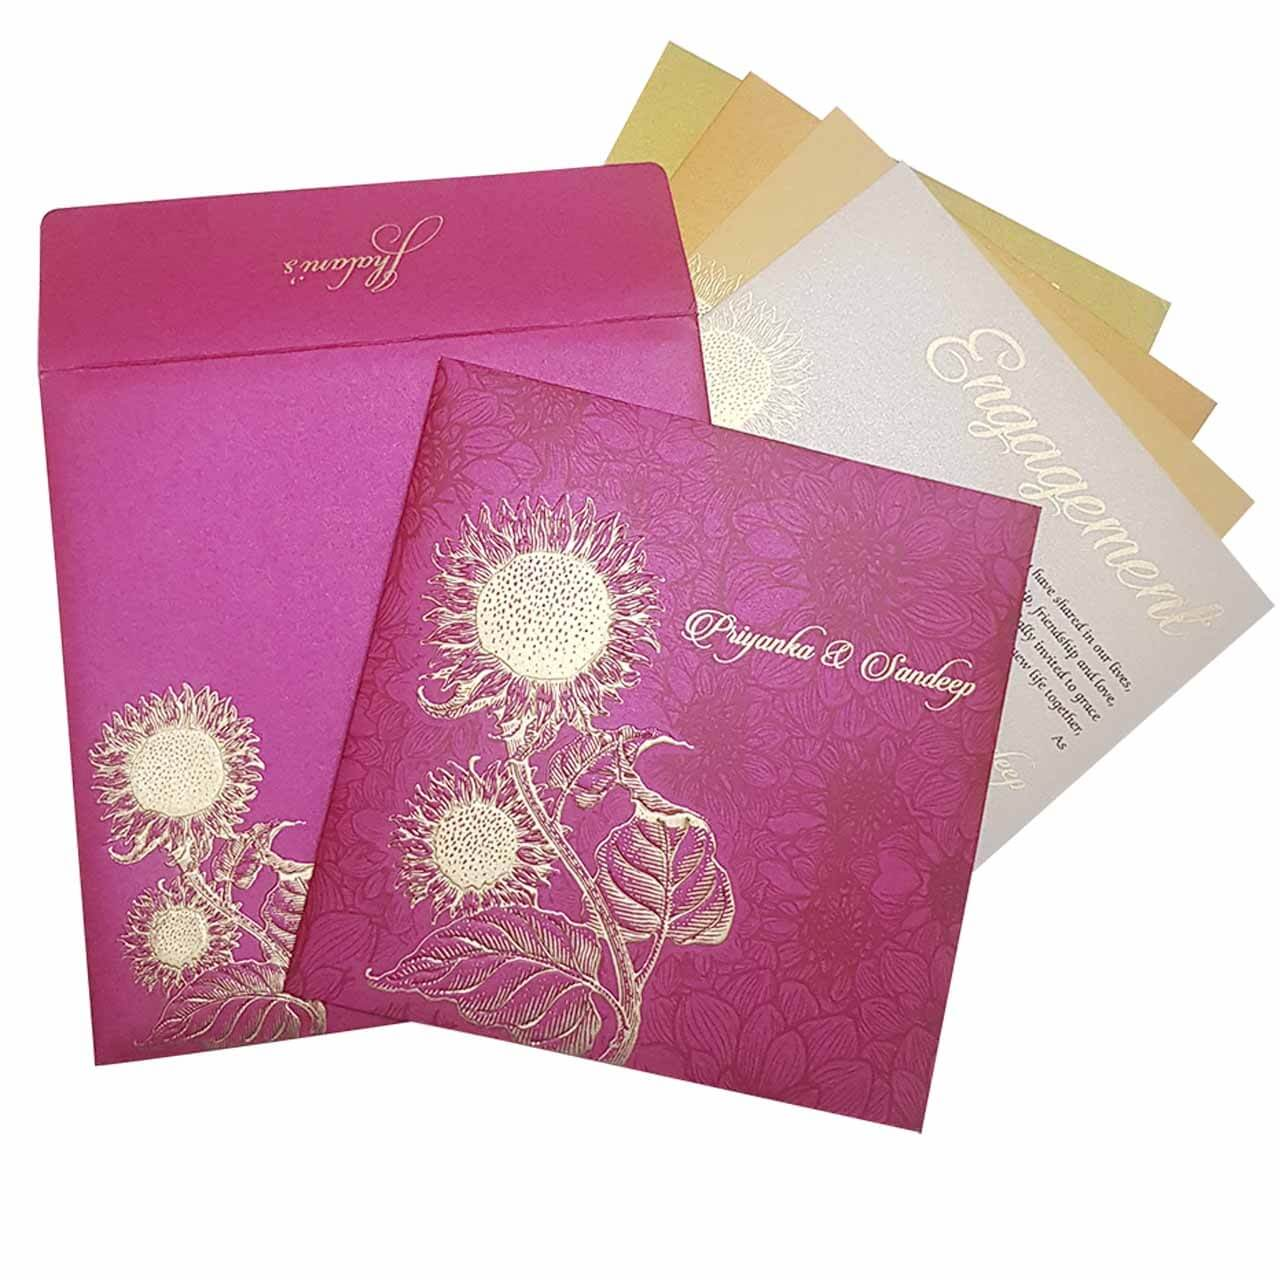 SIKH WEDDING CARDS T3-1046 Full View